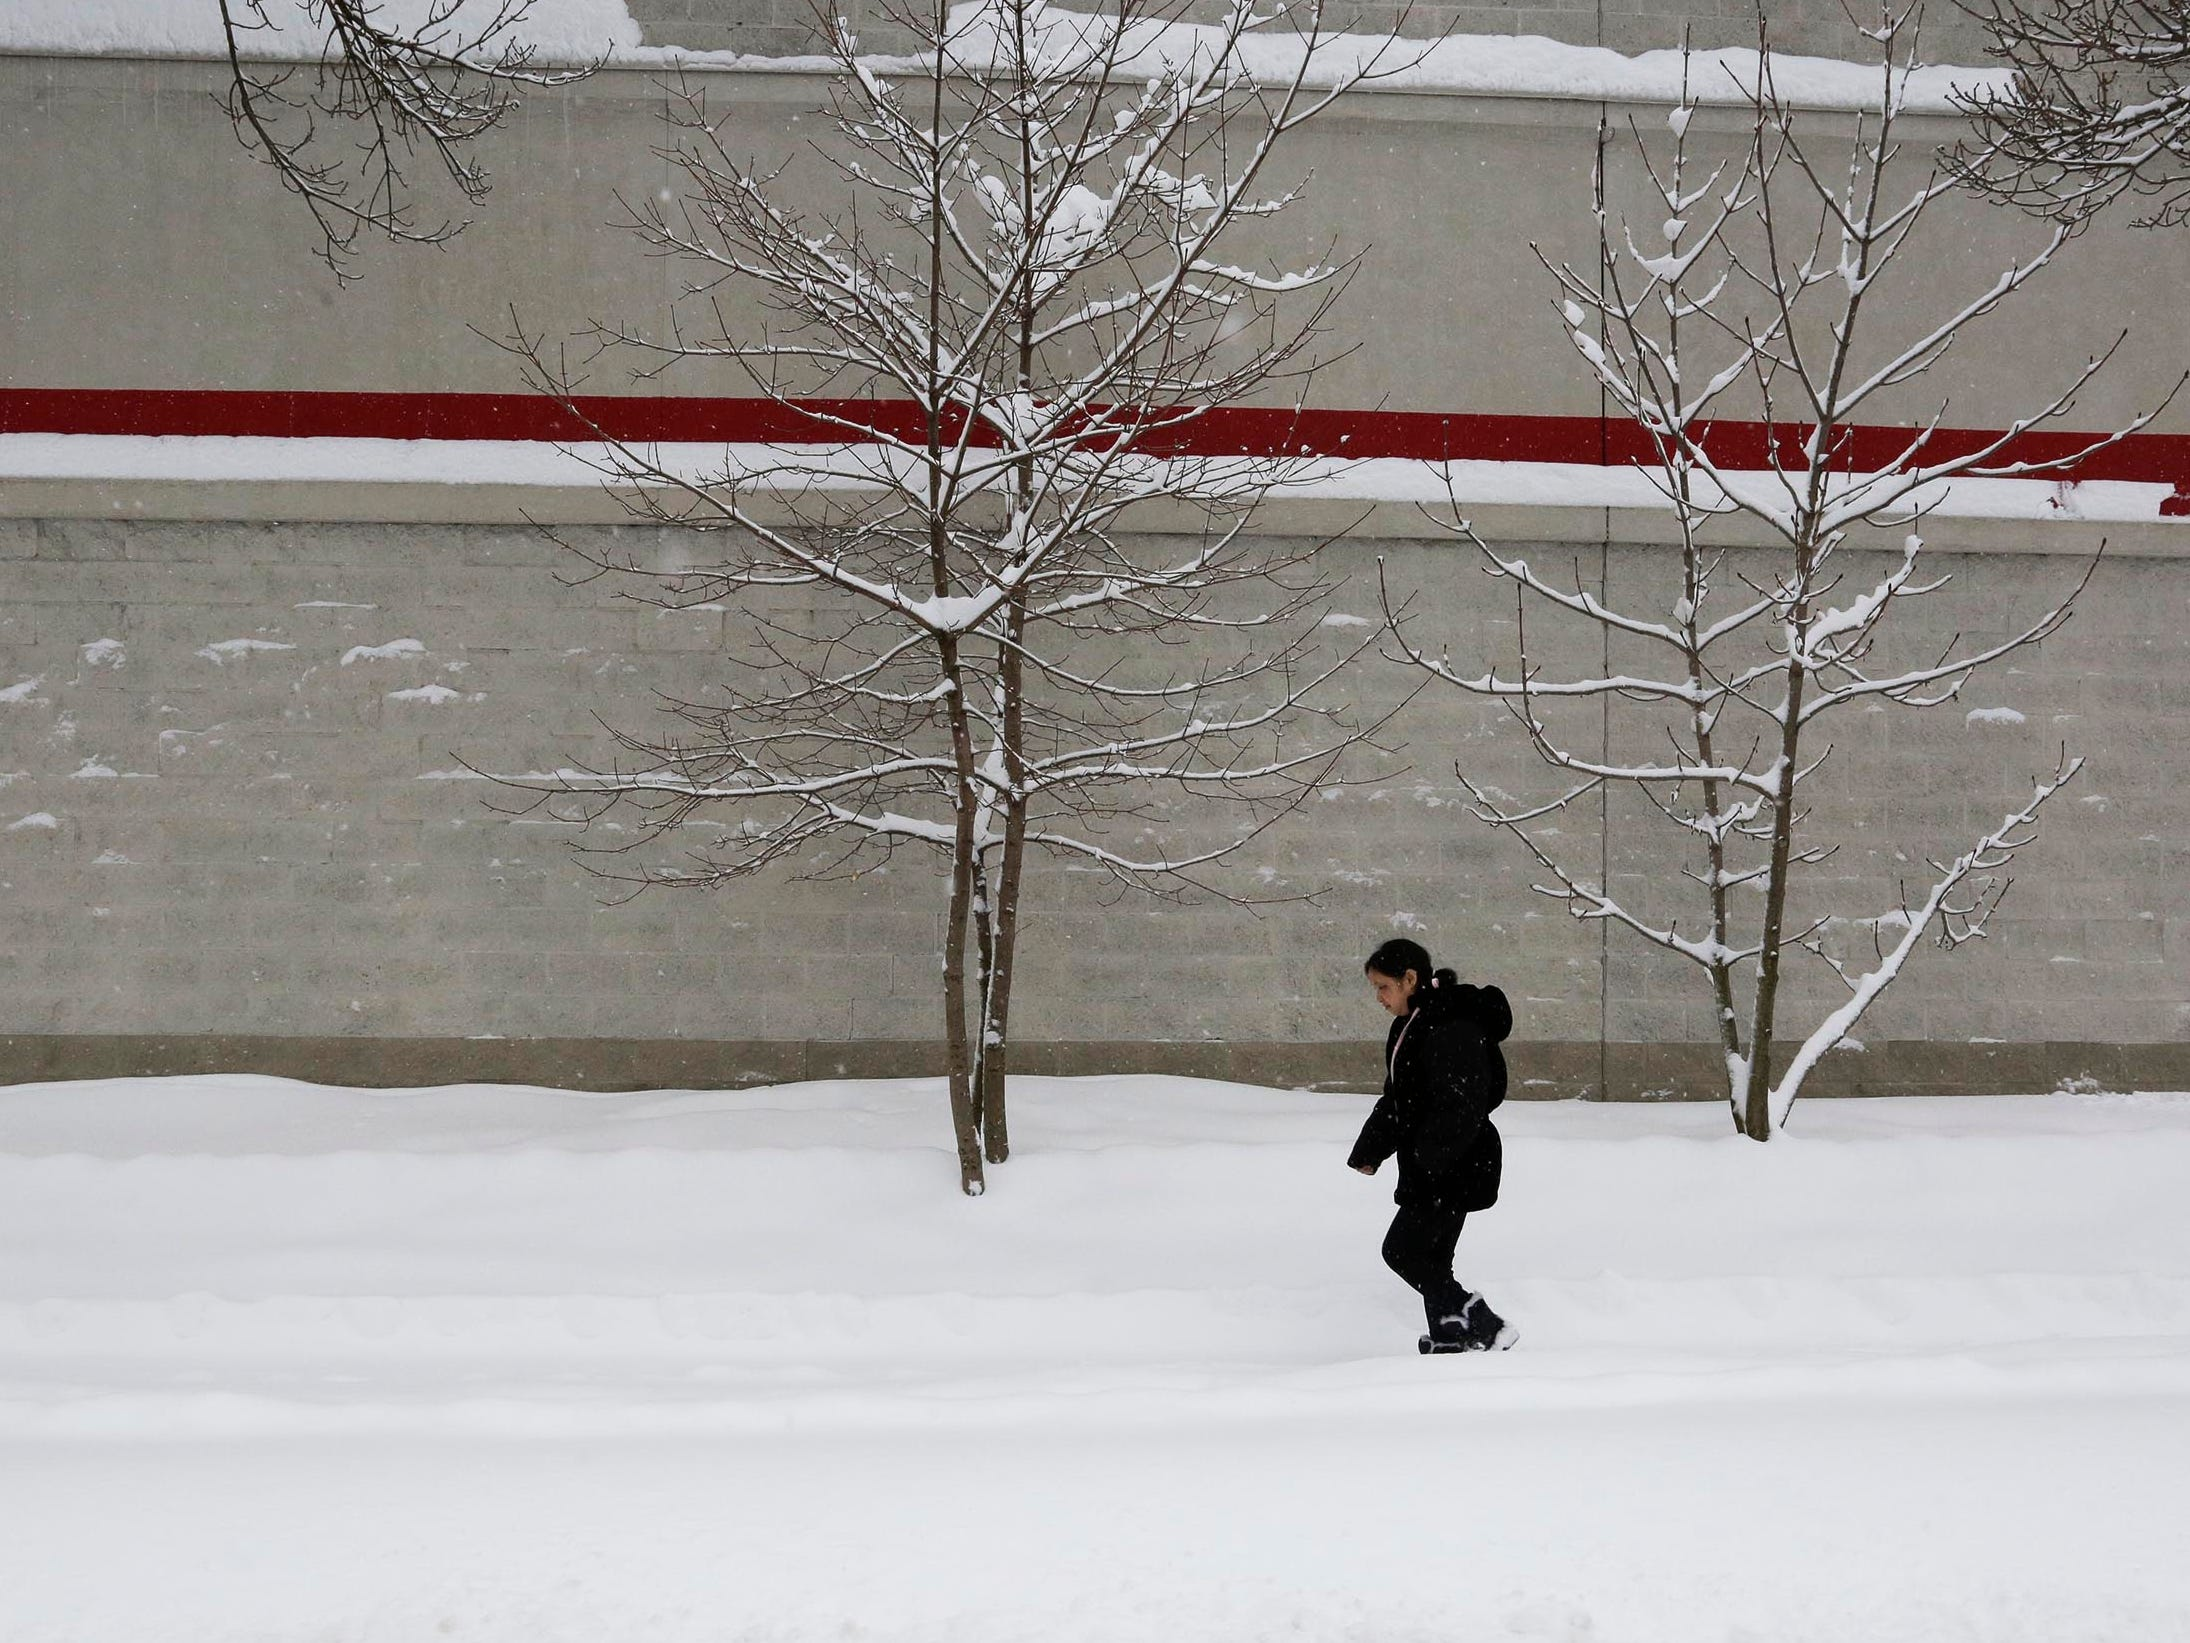 Pao Yang walks on a North 8th Street sidewalk on a fresh blanket of snow, Tuesday, February 12, 2019, in Sheboygan, Wis.